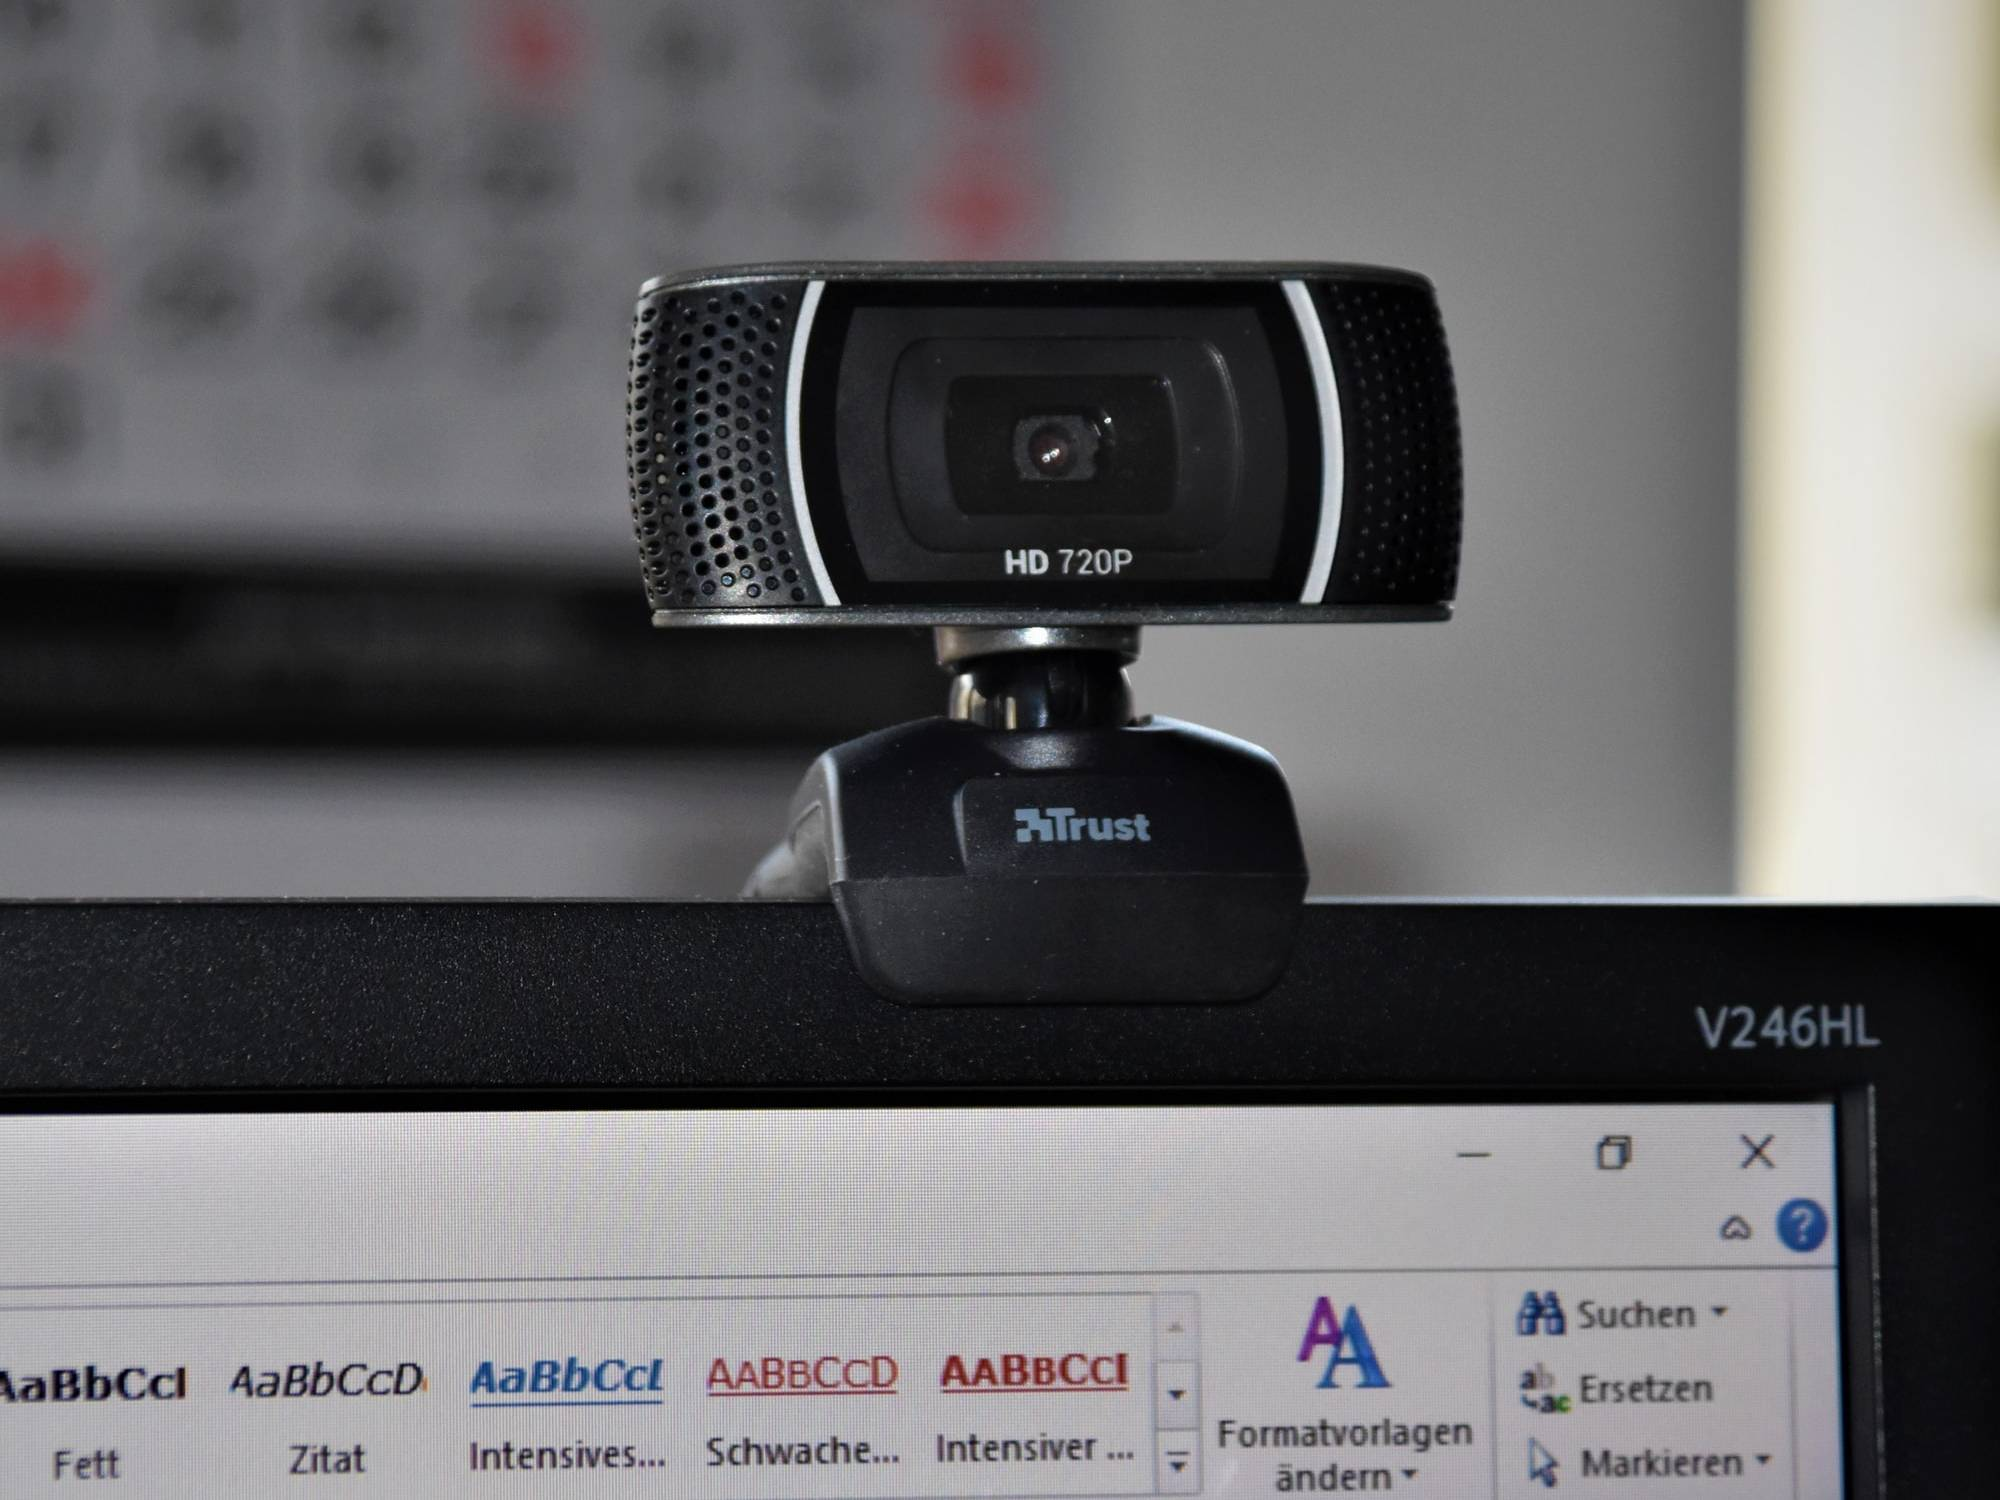 Webcam clipped on to a computer monitor